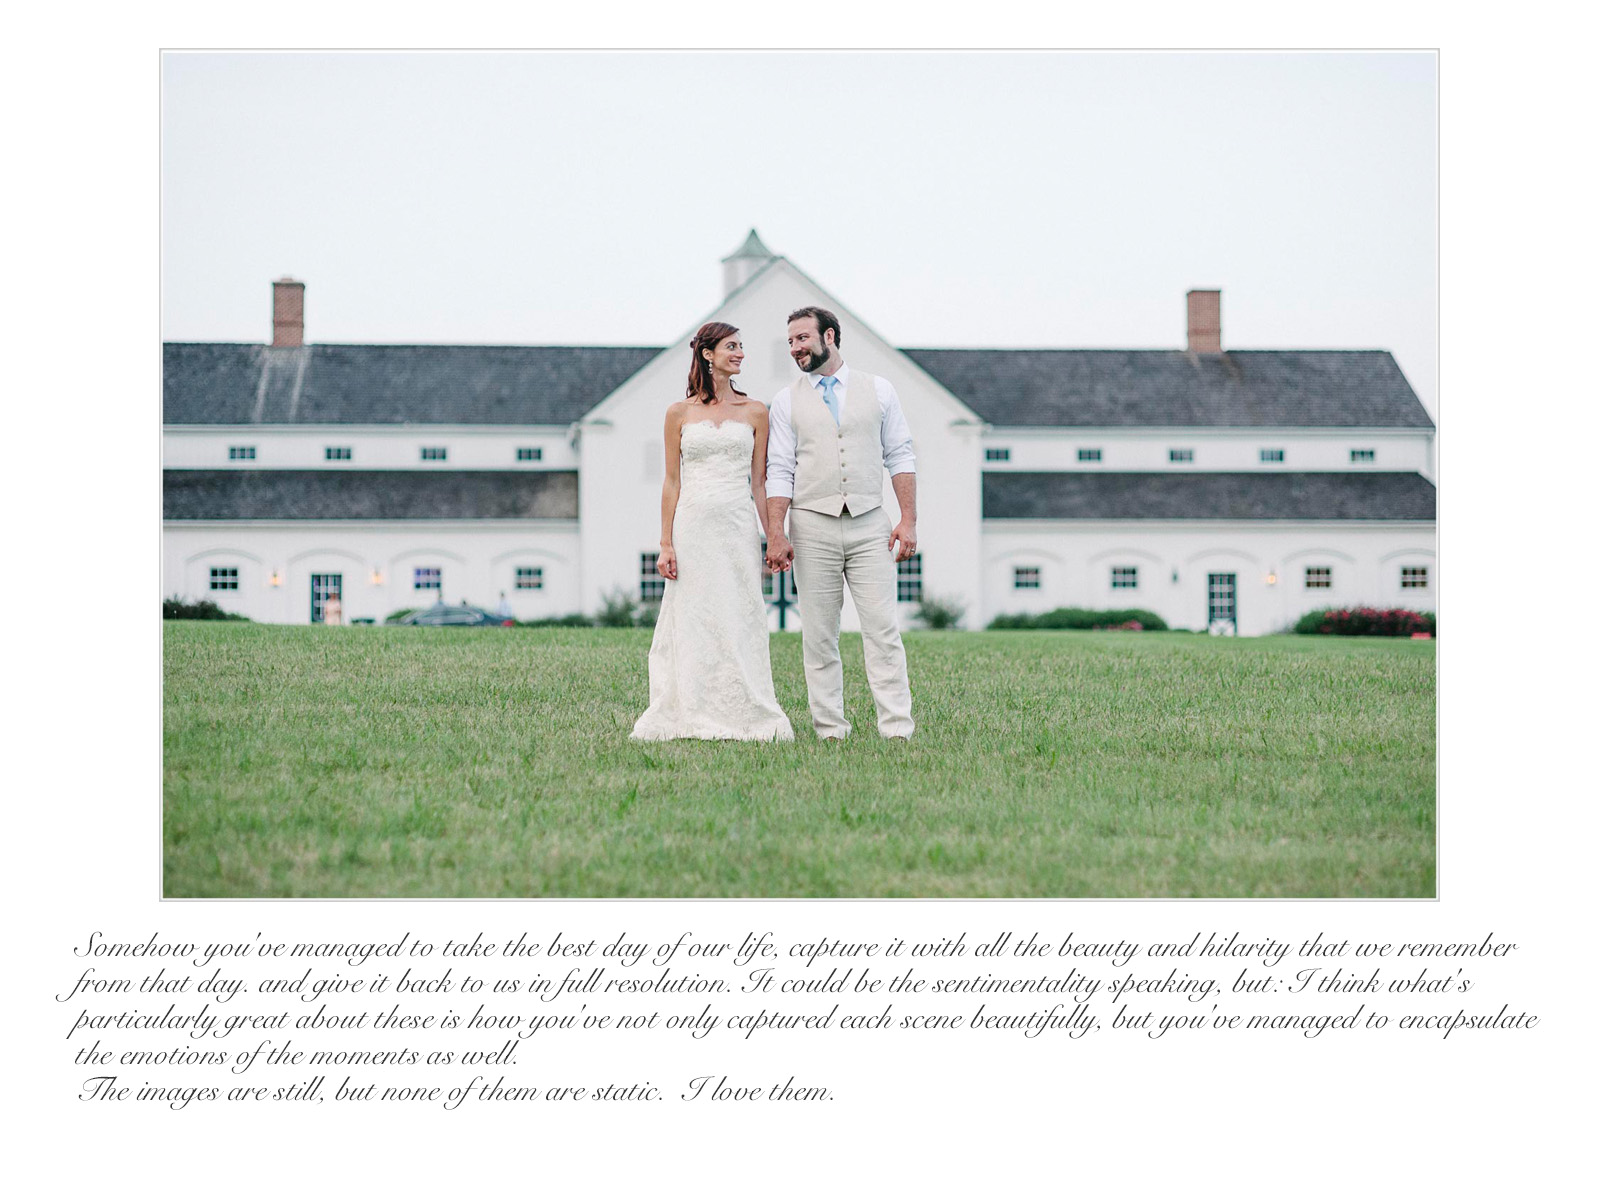 Scott wedding preview quote